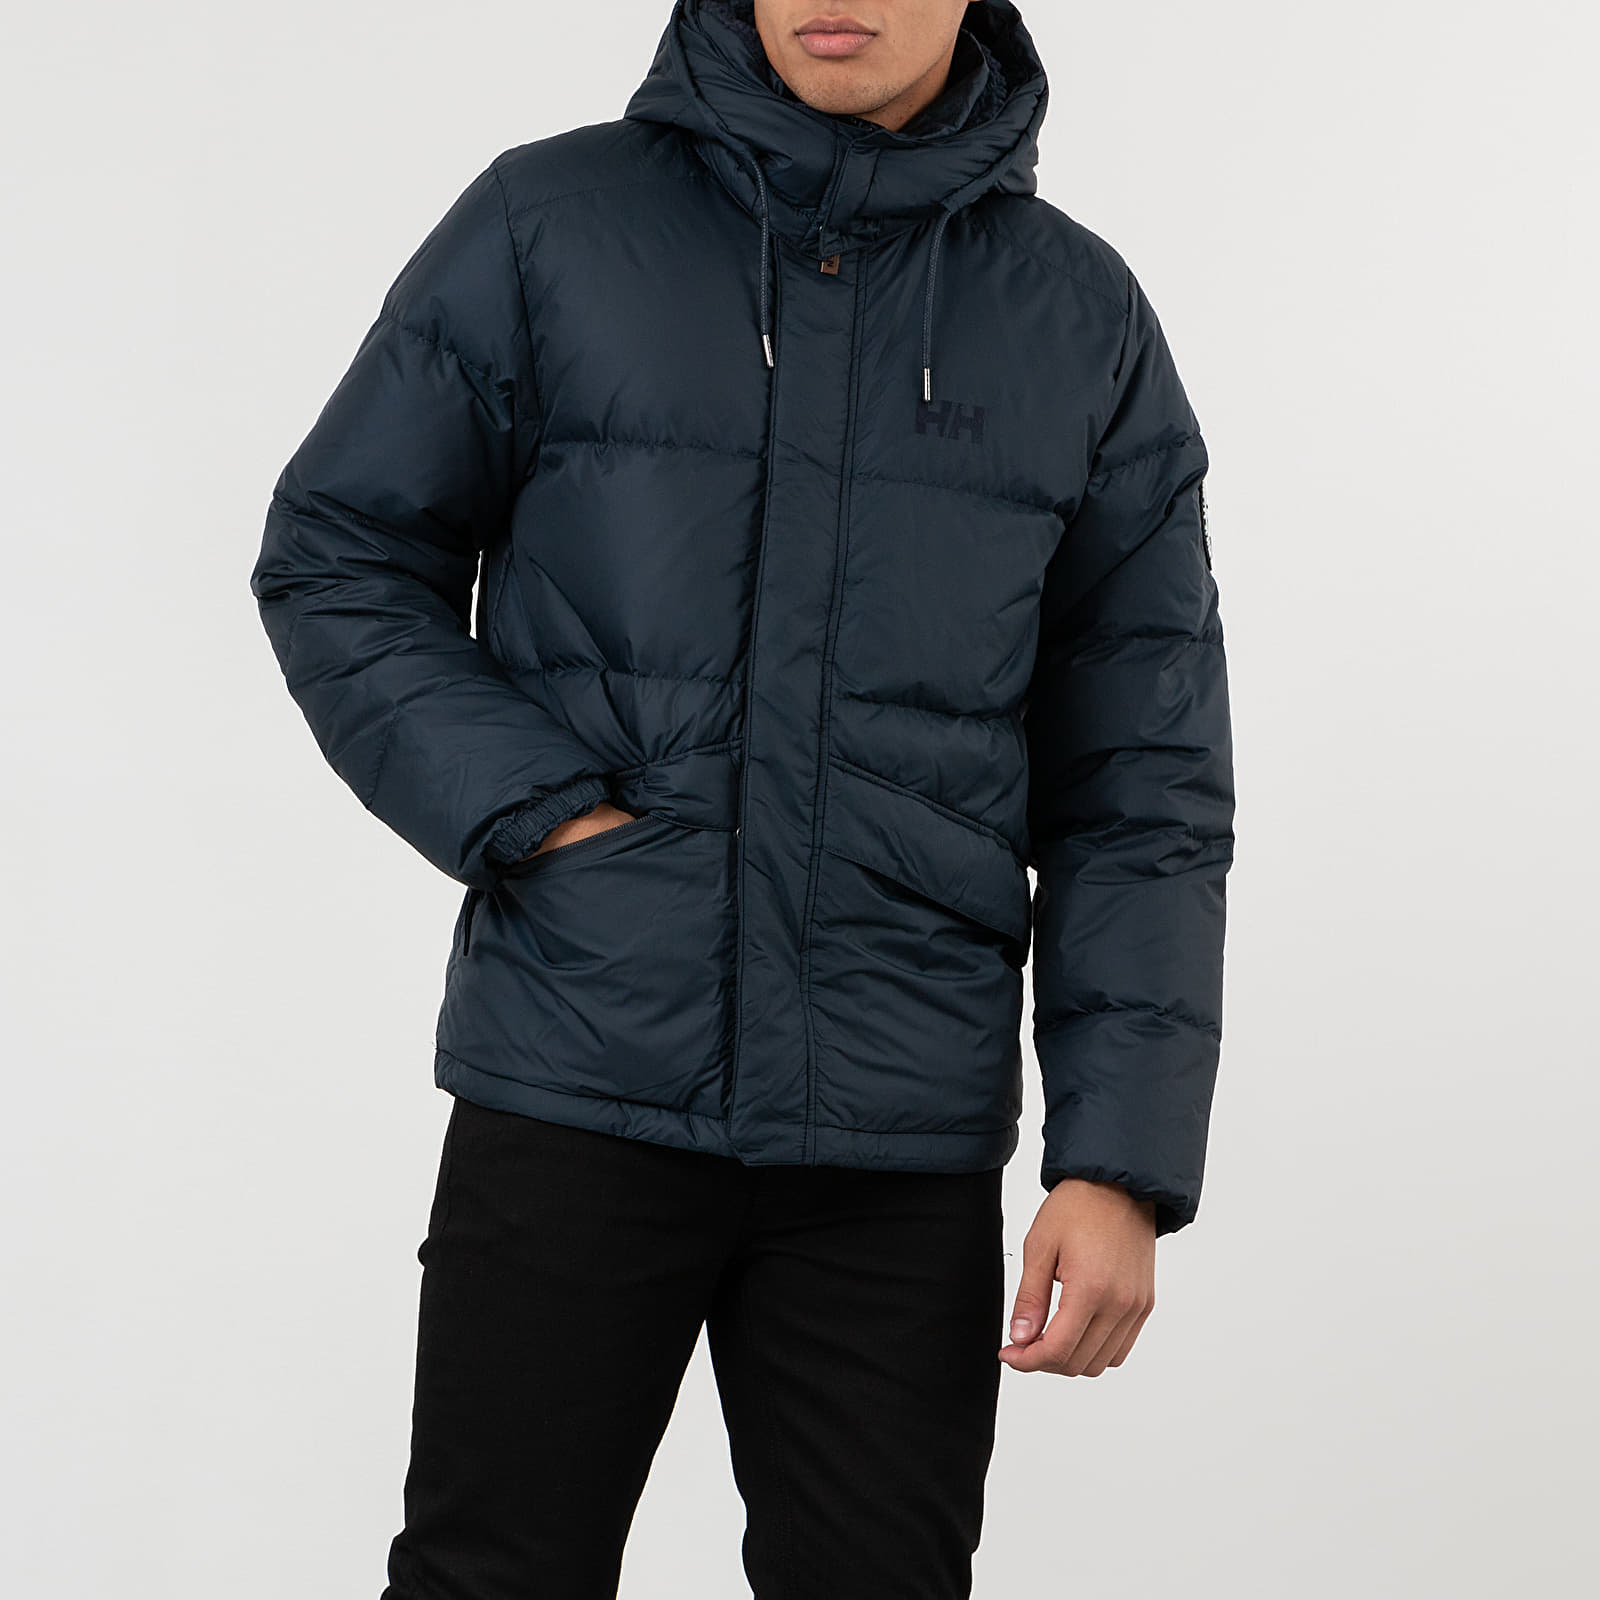 Helly Hansen 1877 Down Jacket